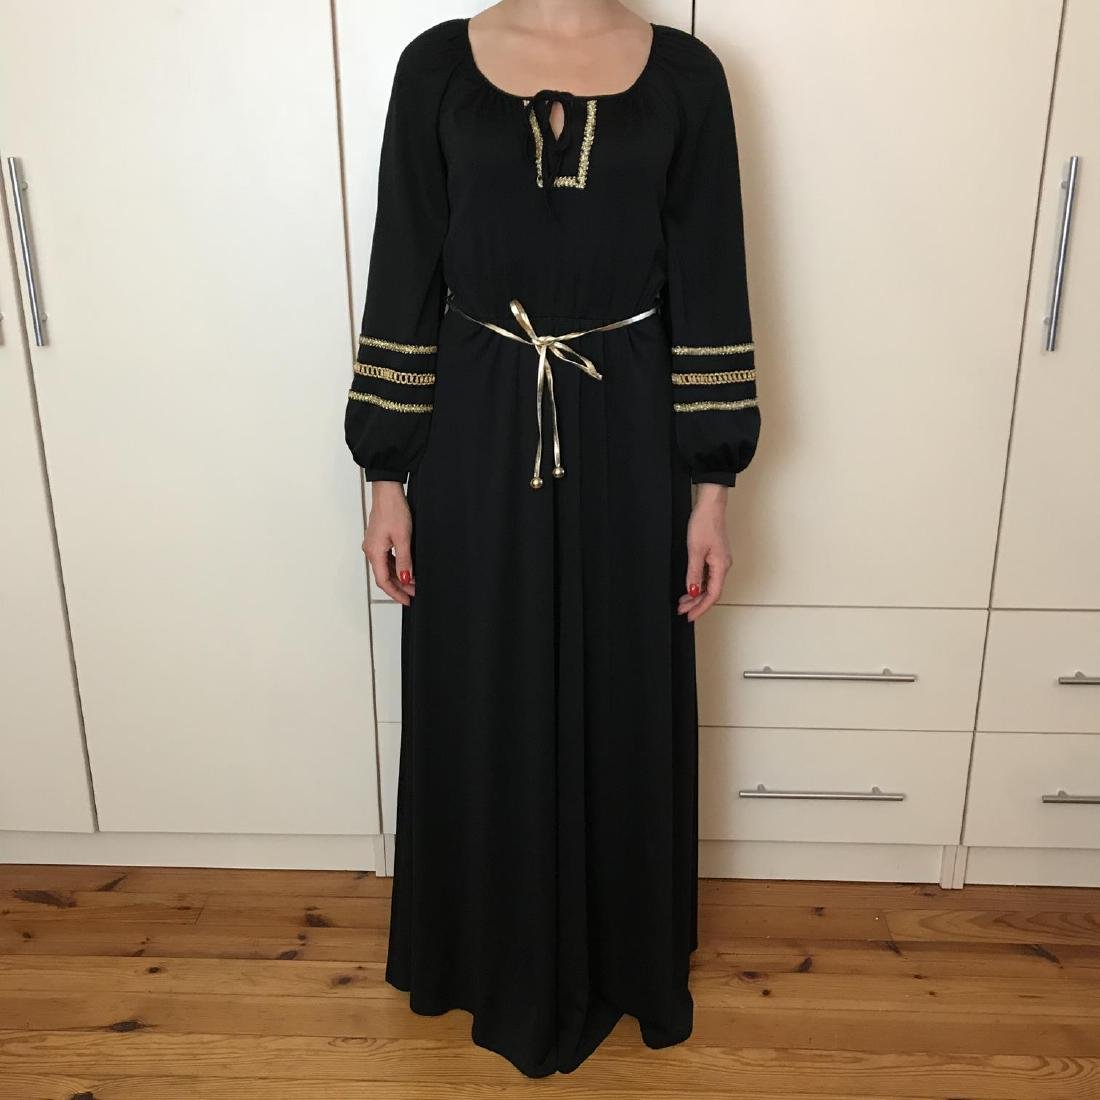 Betty Barclay Black / Gold Vintage Designer Dress - 2